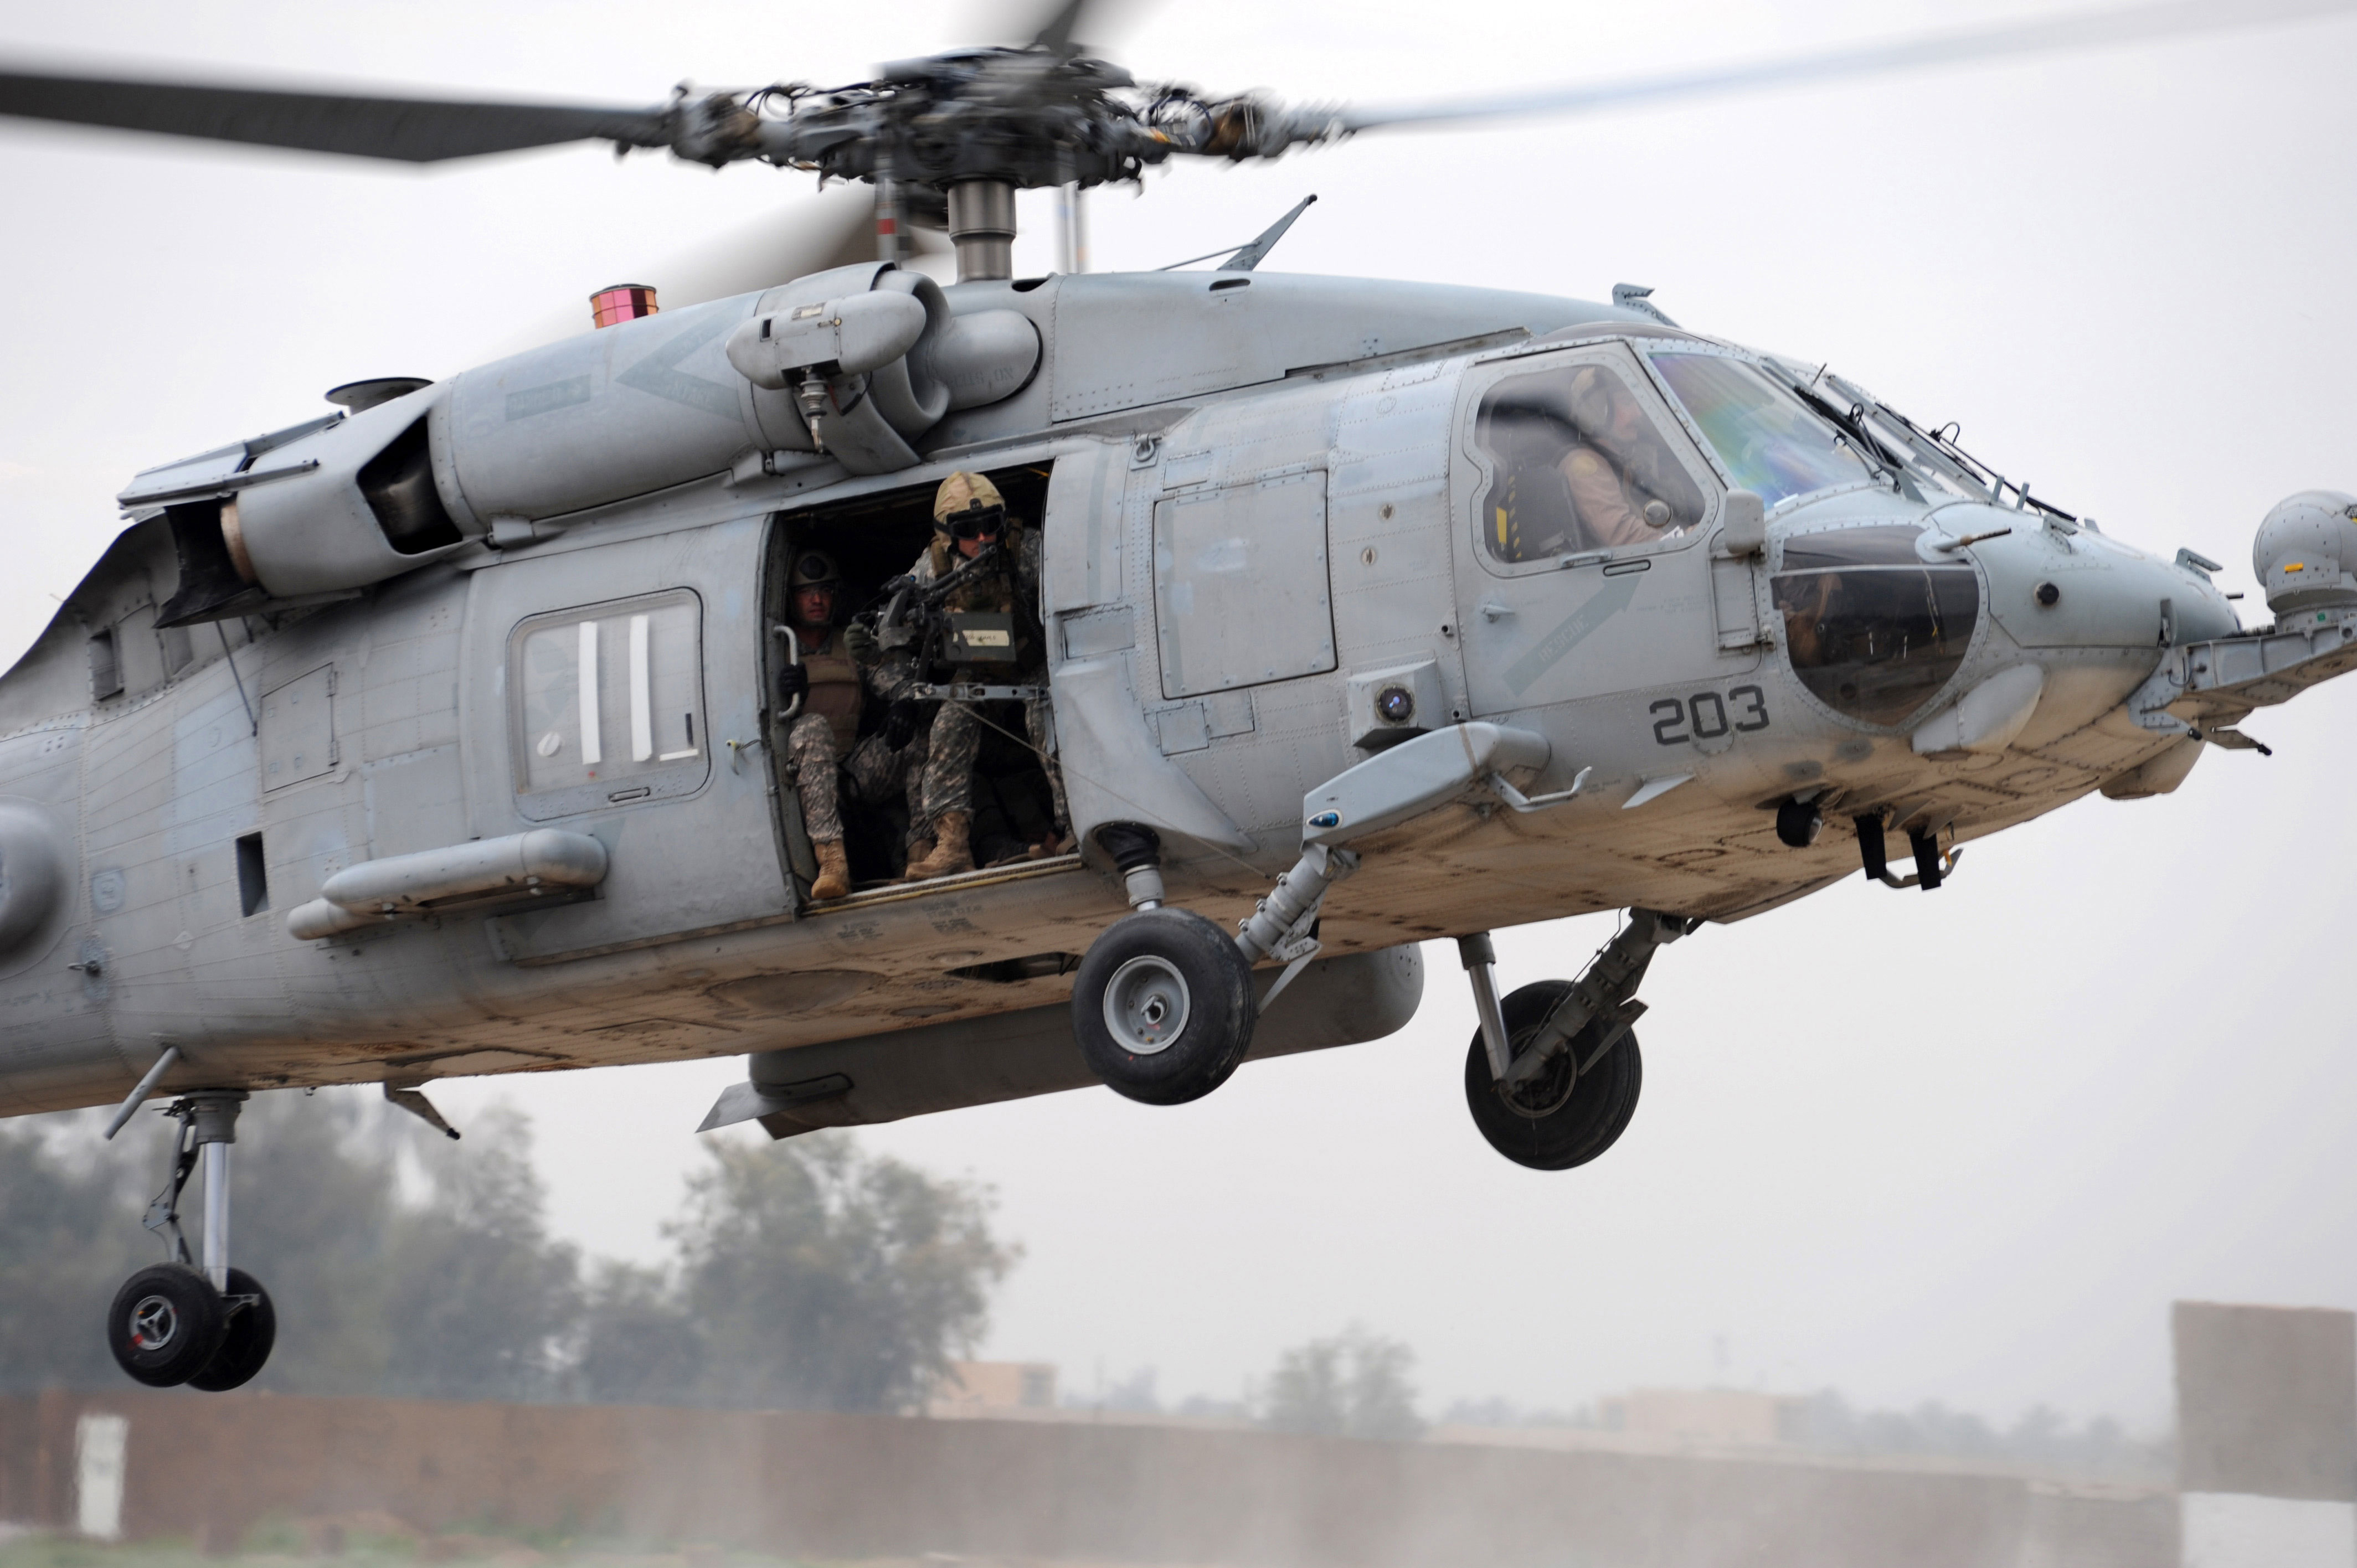 training helicopter with Hh 60h Helicopter Iraq on 48 further Photos likewise 4082 Universitas Pamulang Unpam Logo moreover Boeing Prepares Begin Ch 47f Chinook Block 2 Upgrade also Adventuresports.